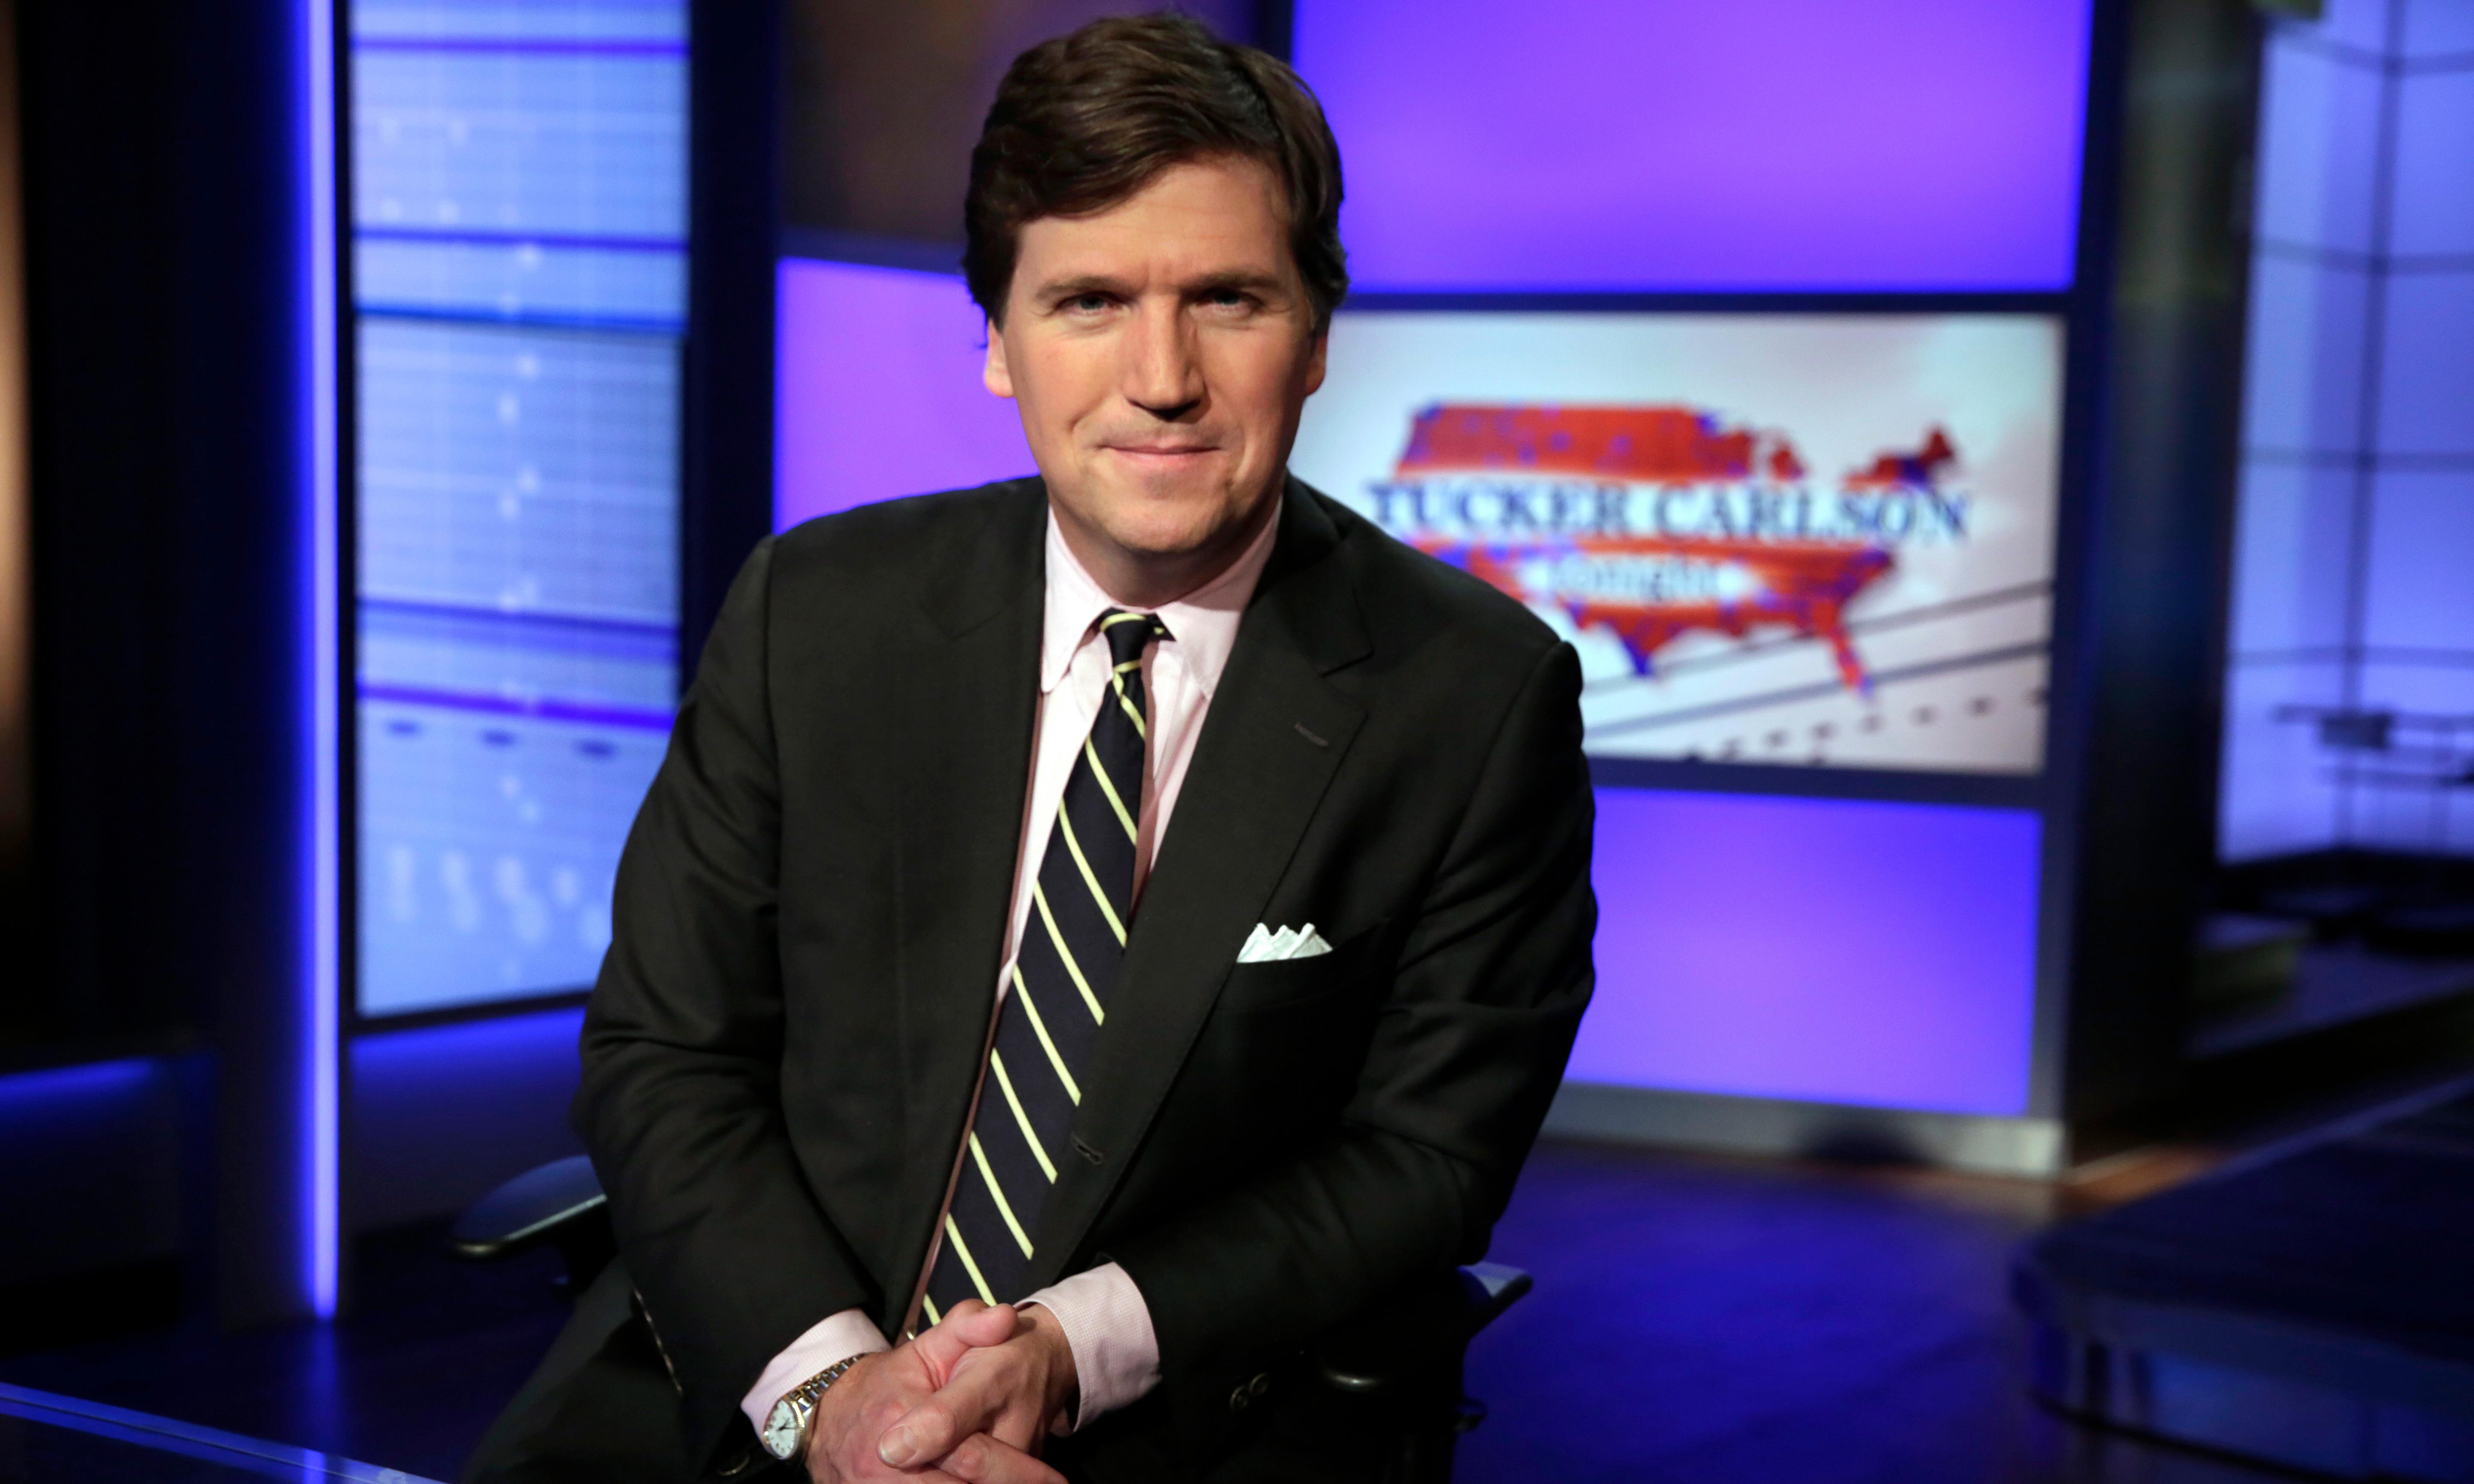 Fox News attack dog Tucker Carlson turns on Trump: 'I don't think he's capable'